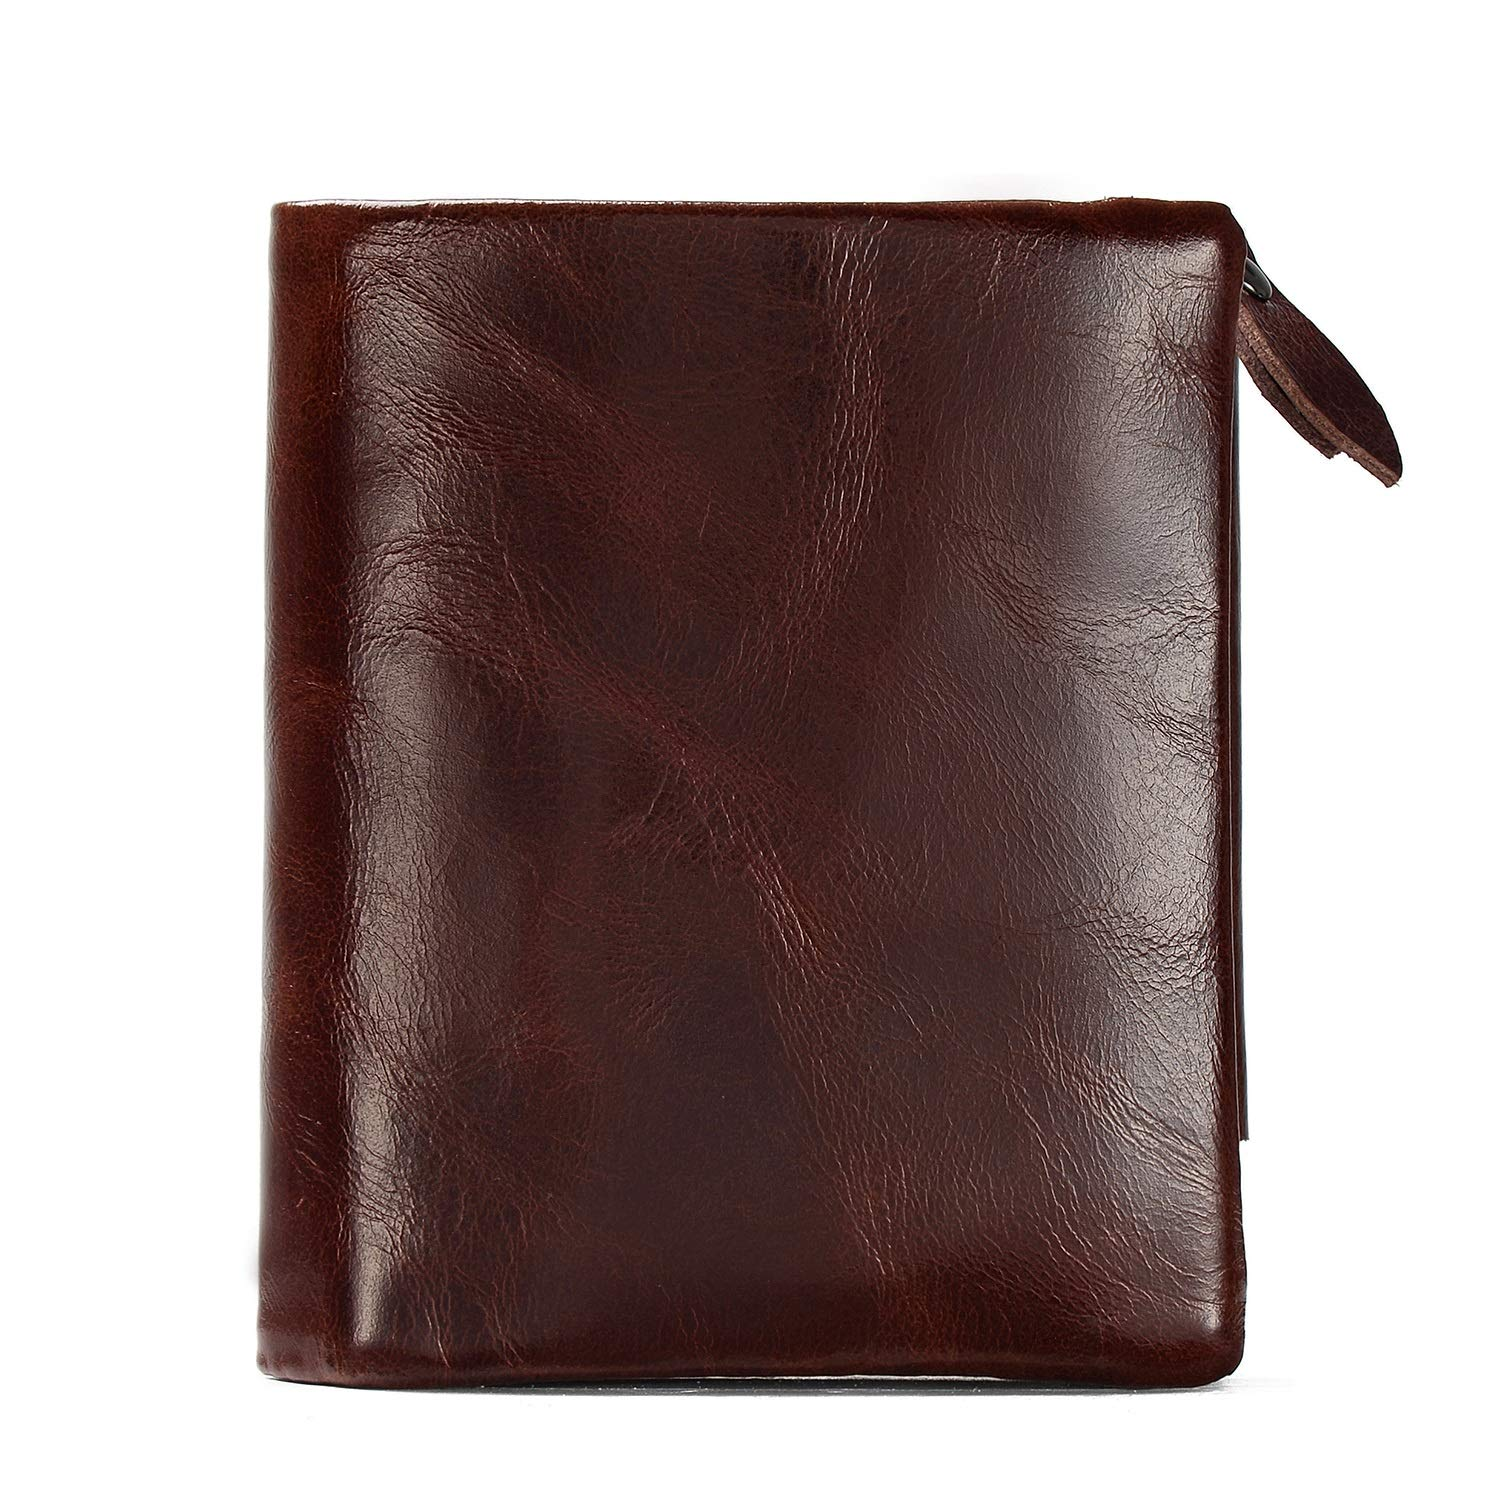 Color : Camel KRPENRIO Blocking Bifold Genuine Leather Minimalist Front Pocket Wallets for Men with Money Clip